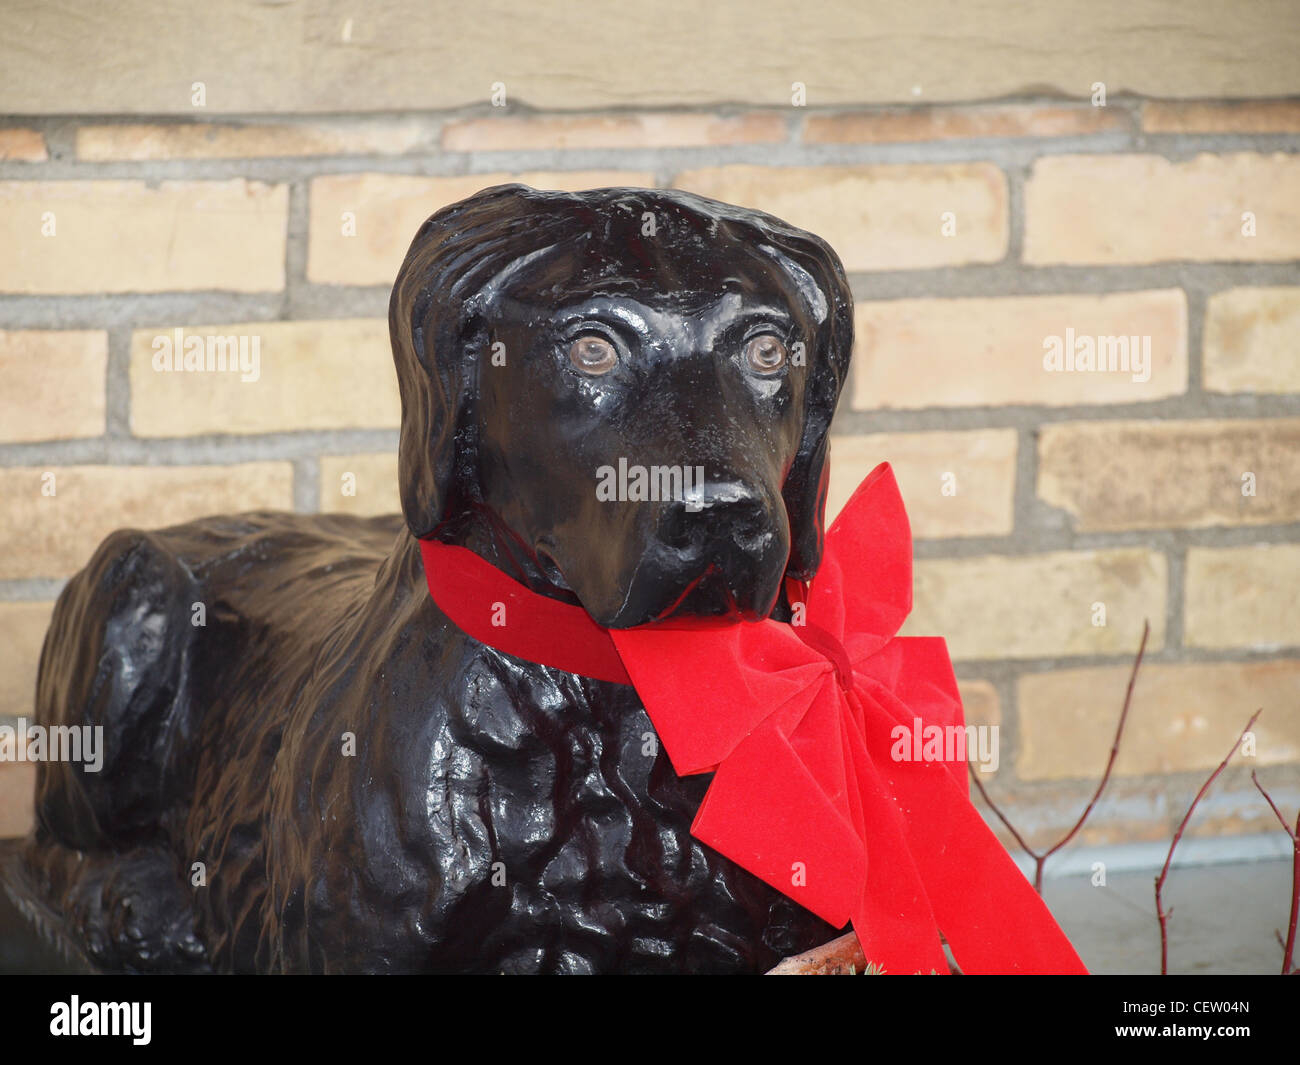 Vintage Black Labrador Dog Garden Statue With Red Christmas Bow   Stock  Image